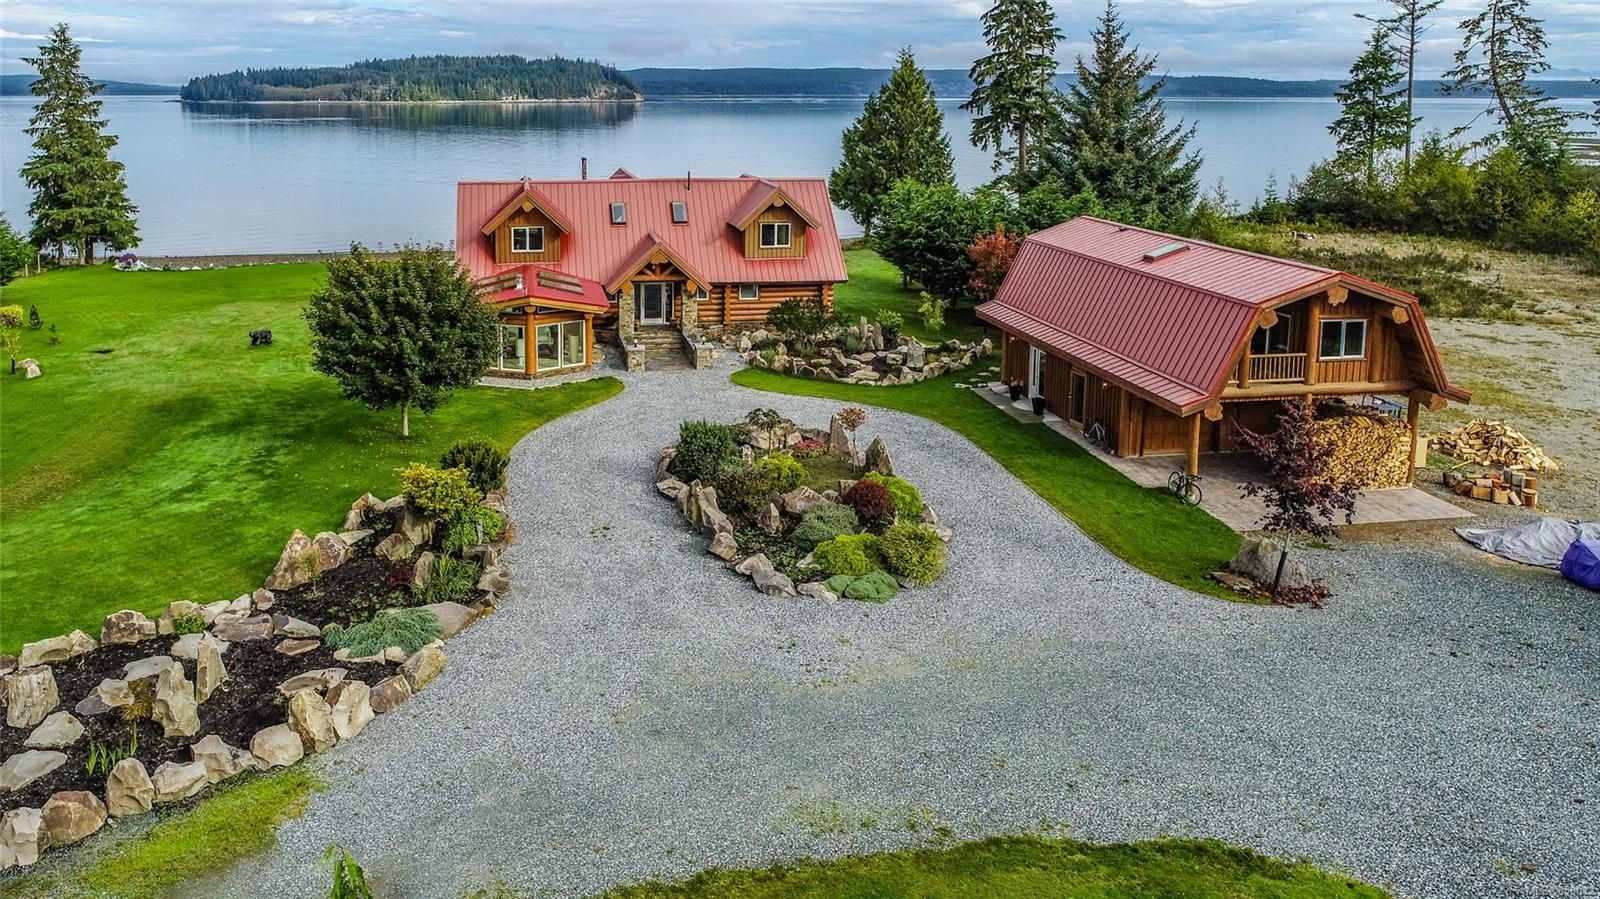 Photo 92: Photos: 6030 MINE Rd in : NI Port McNeill House for sale (North Island)  : MLS®# 858012